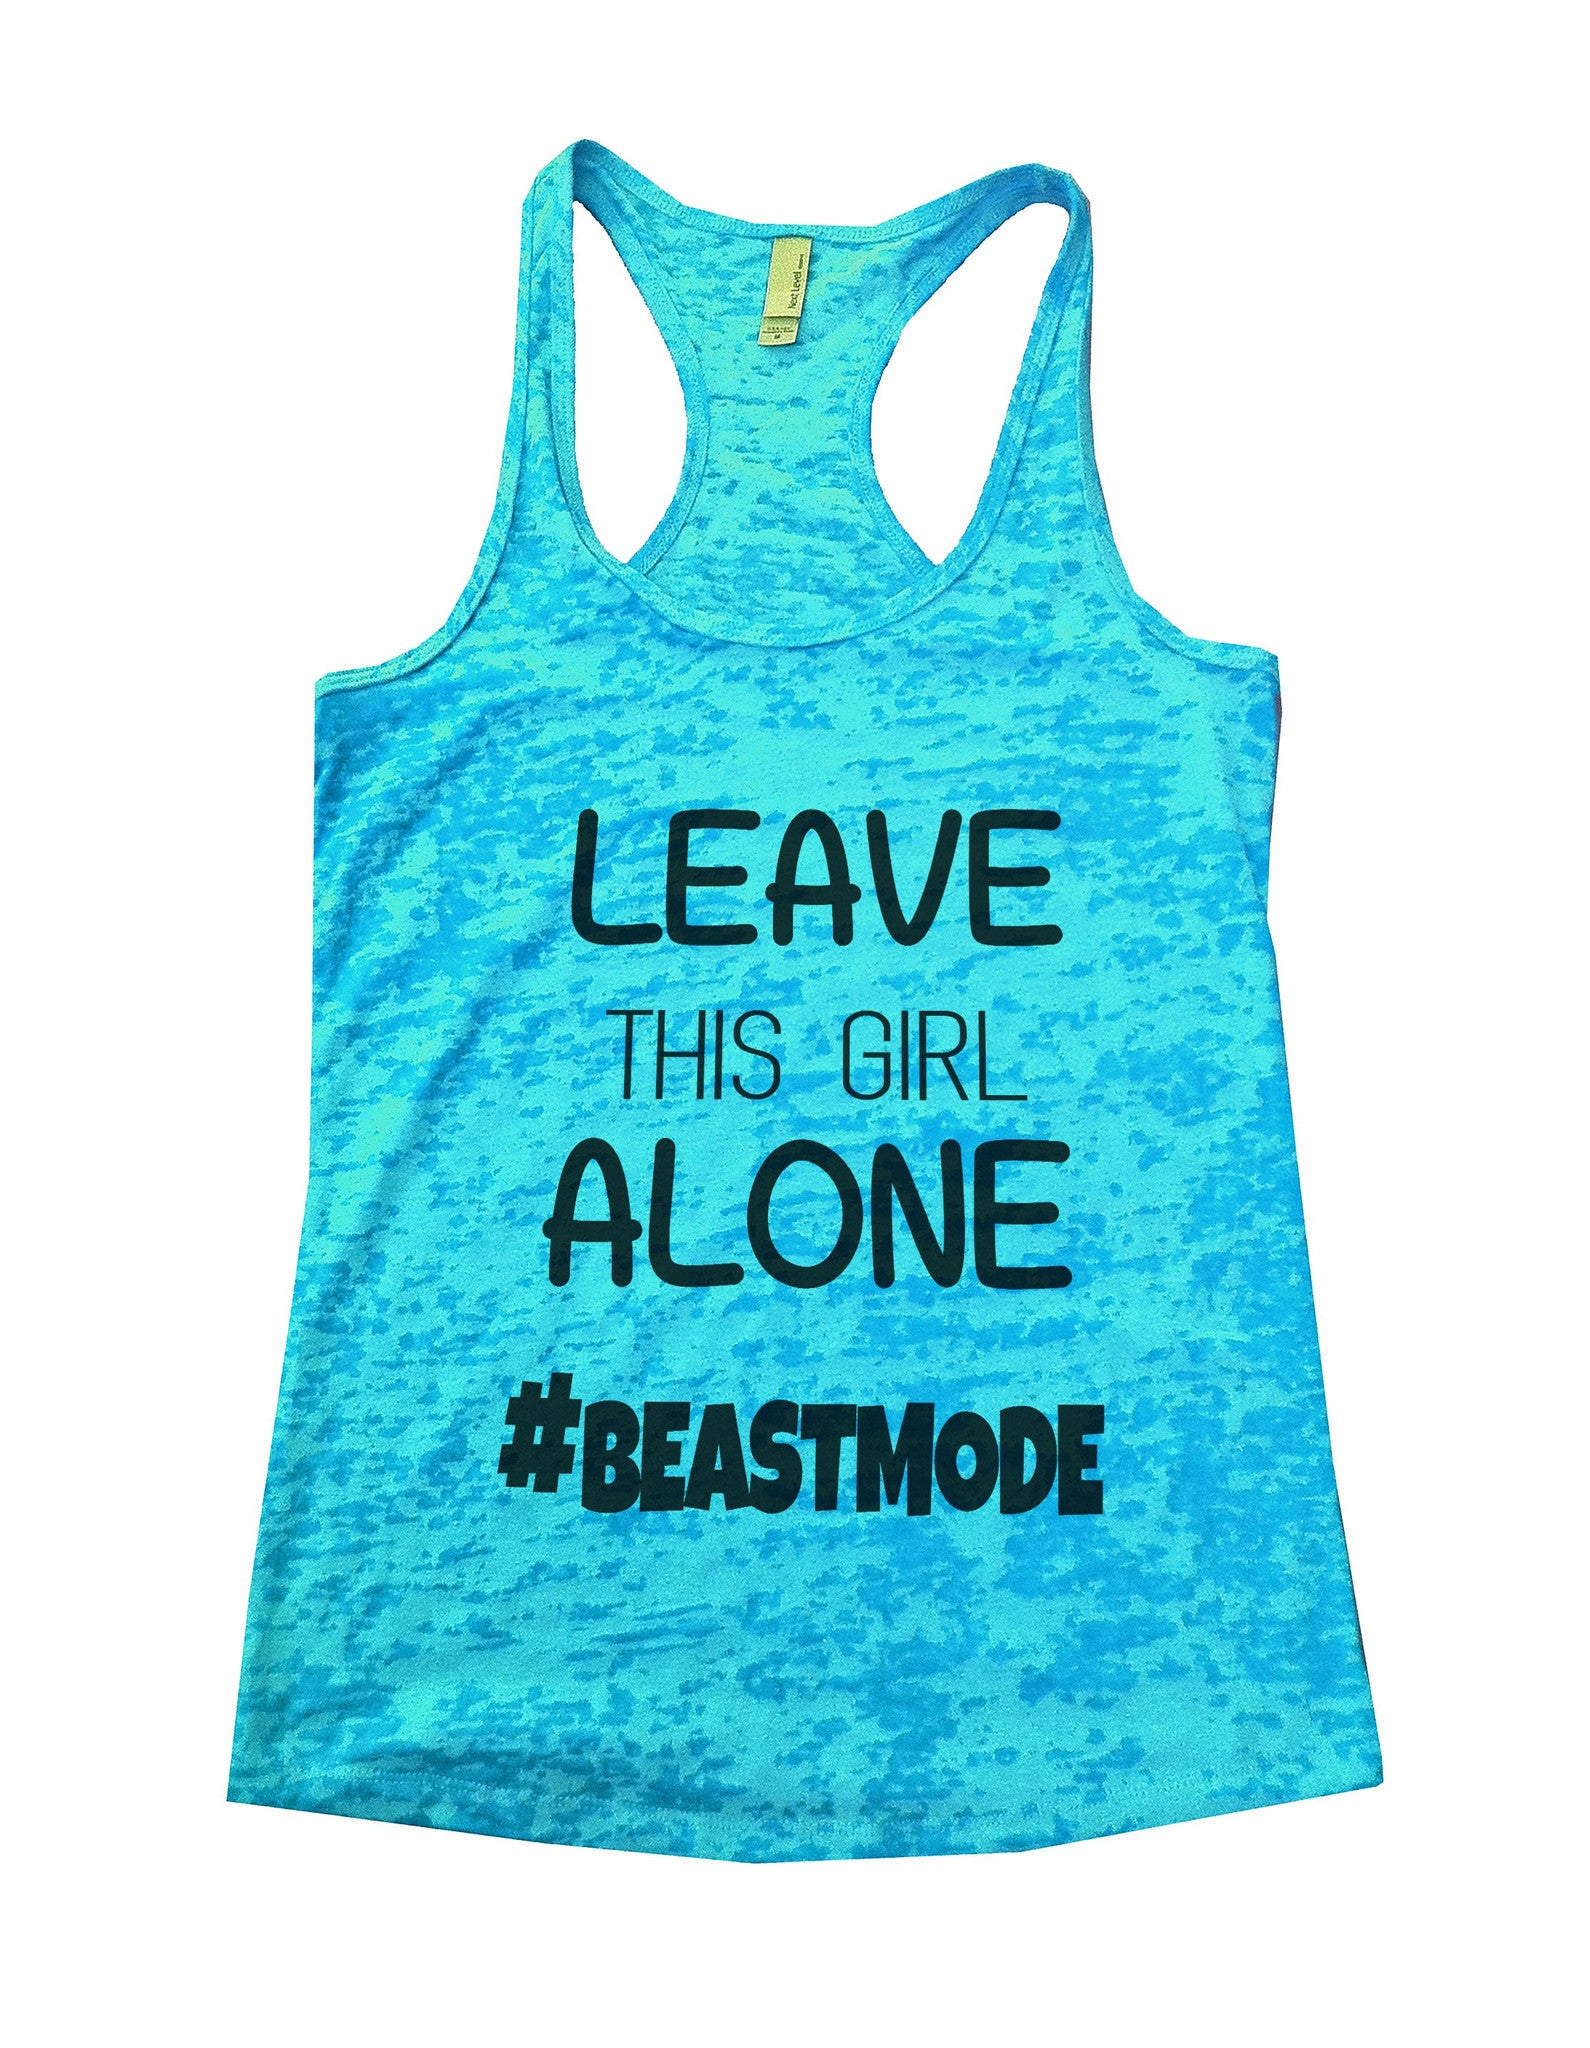 Leave This Girl Alone Beastmode Burnout Tank Top By BurnoutTankTops.com - 638 - Funny Shirts Tank Tops Burnouts and Triblends  - 3